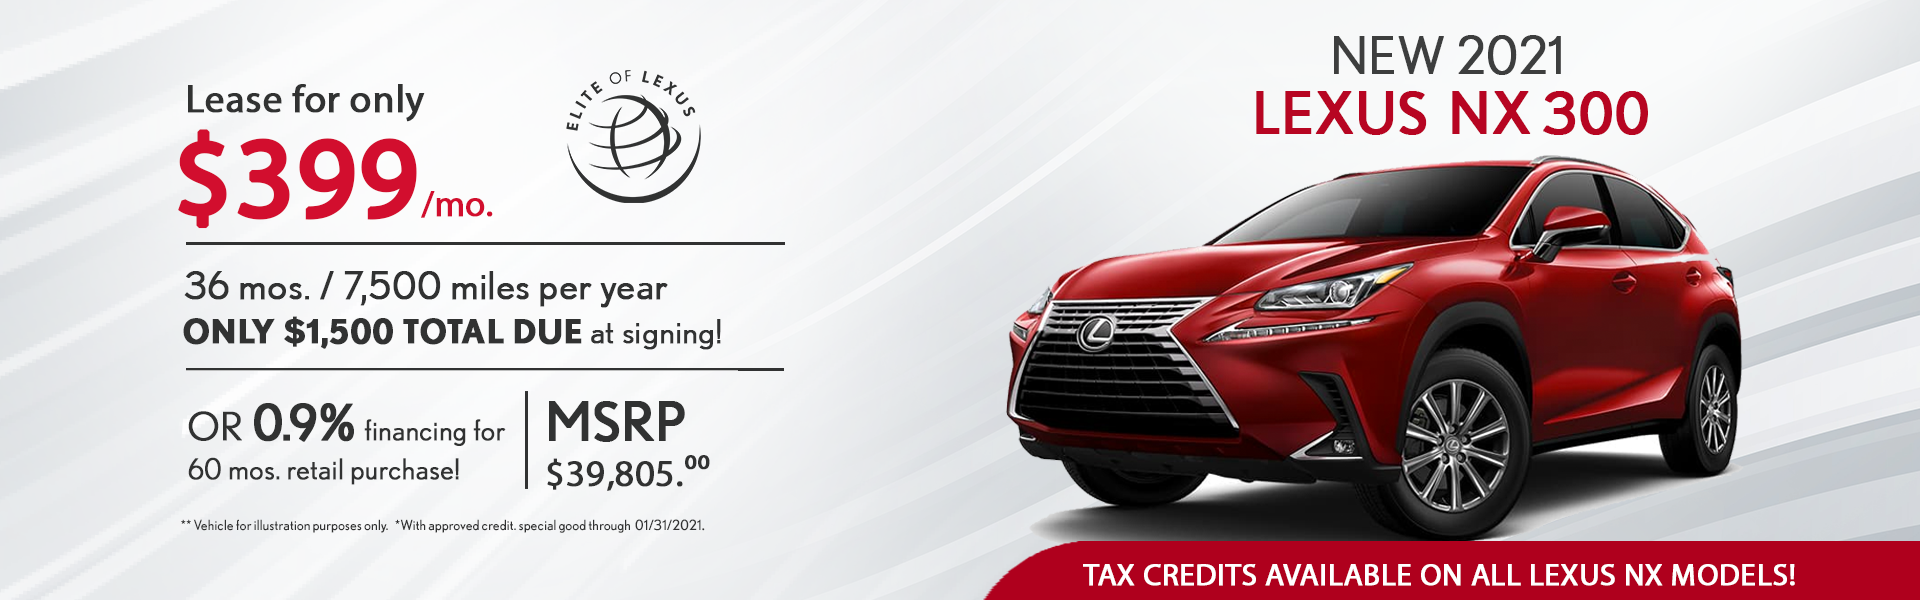 January Lexus Lease Specials NX 300